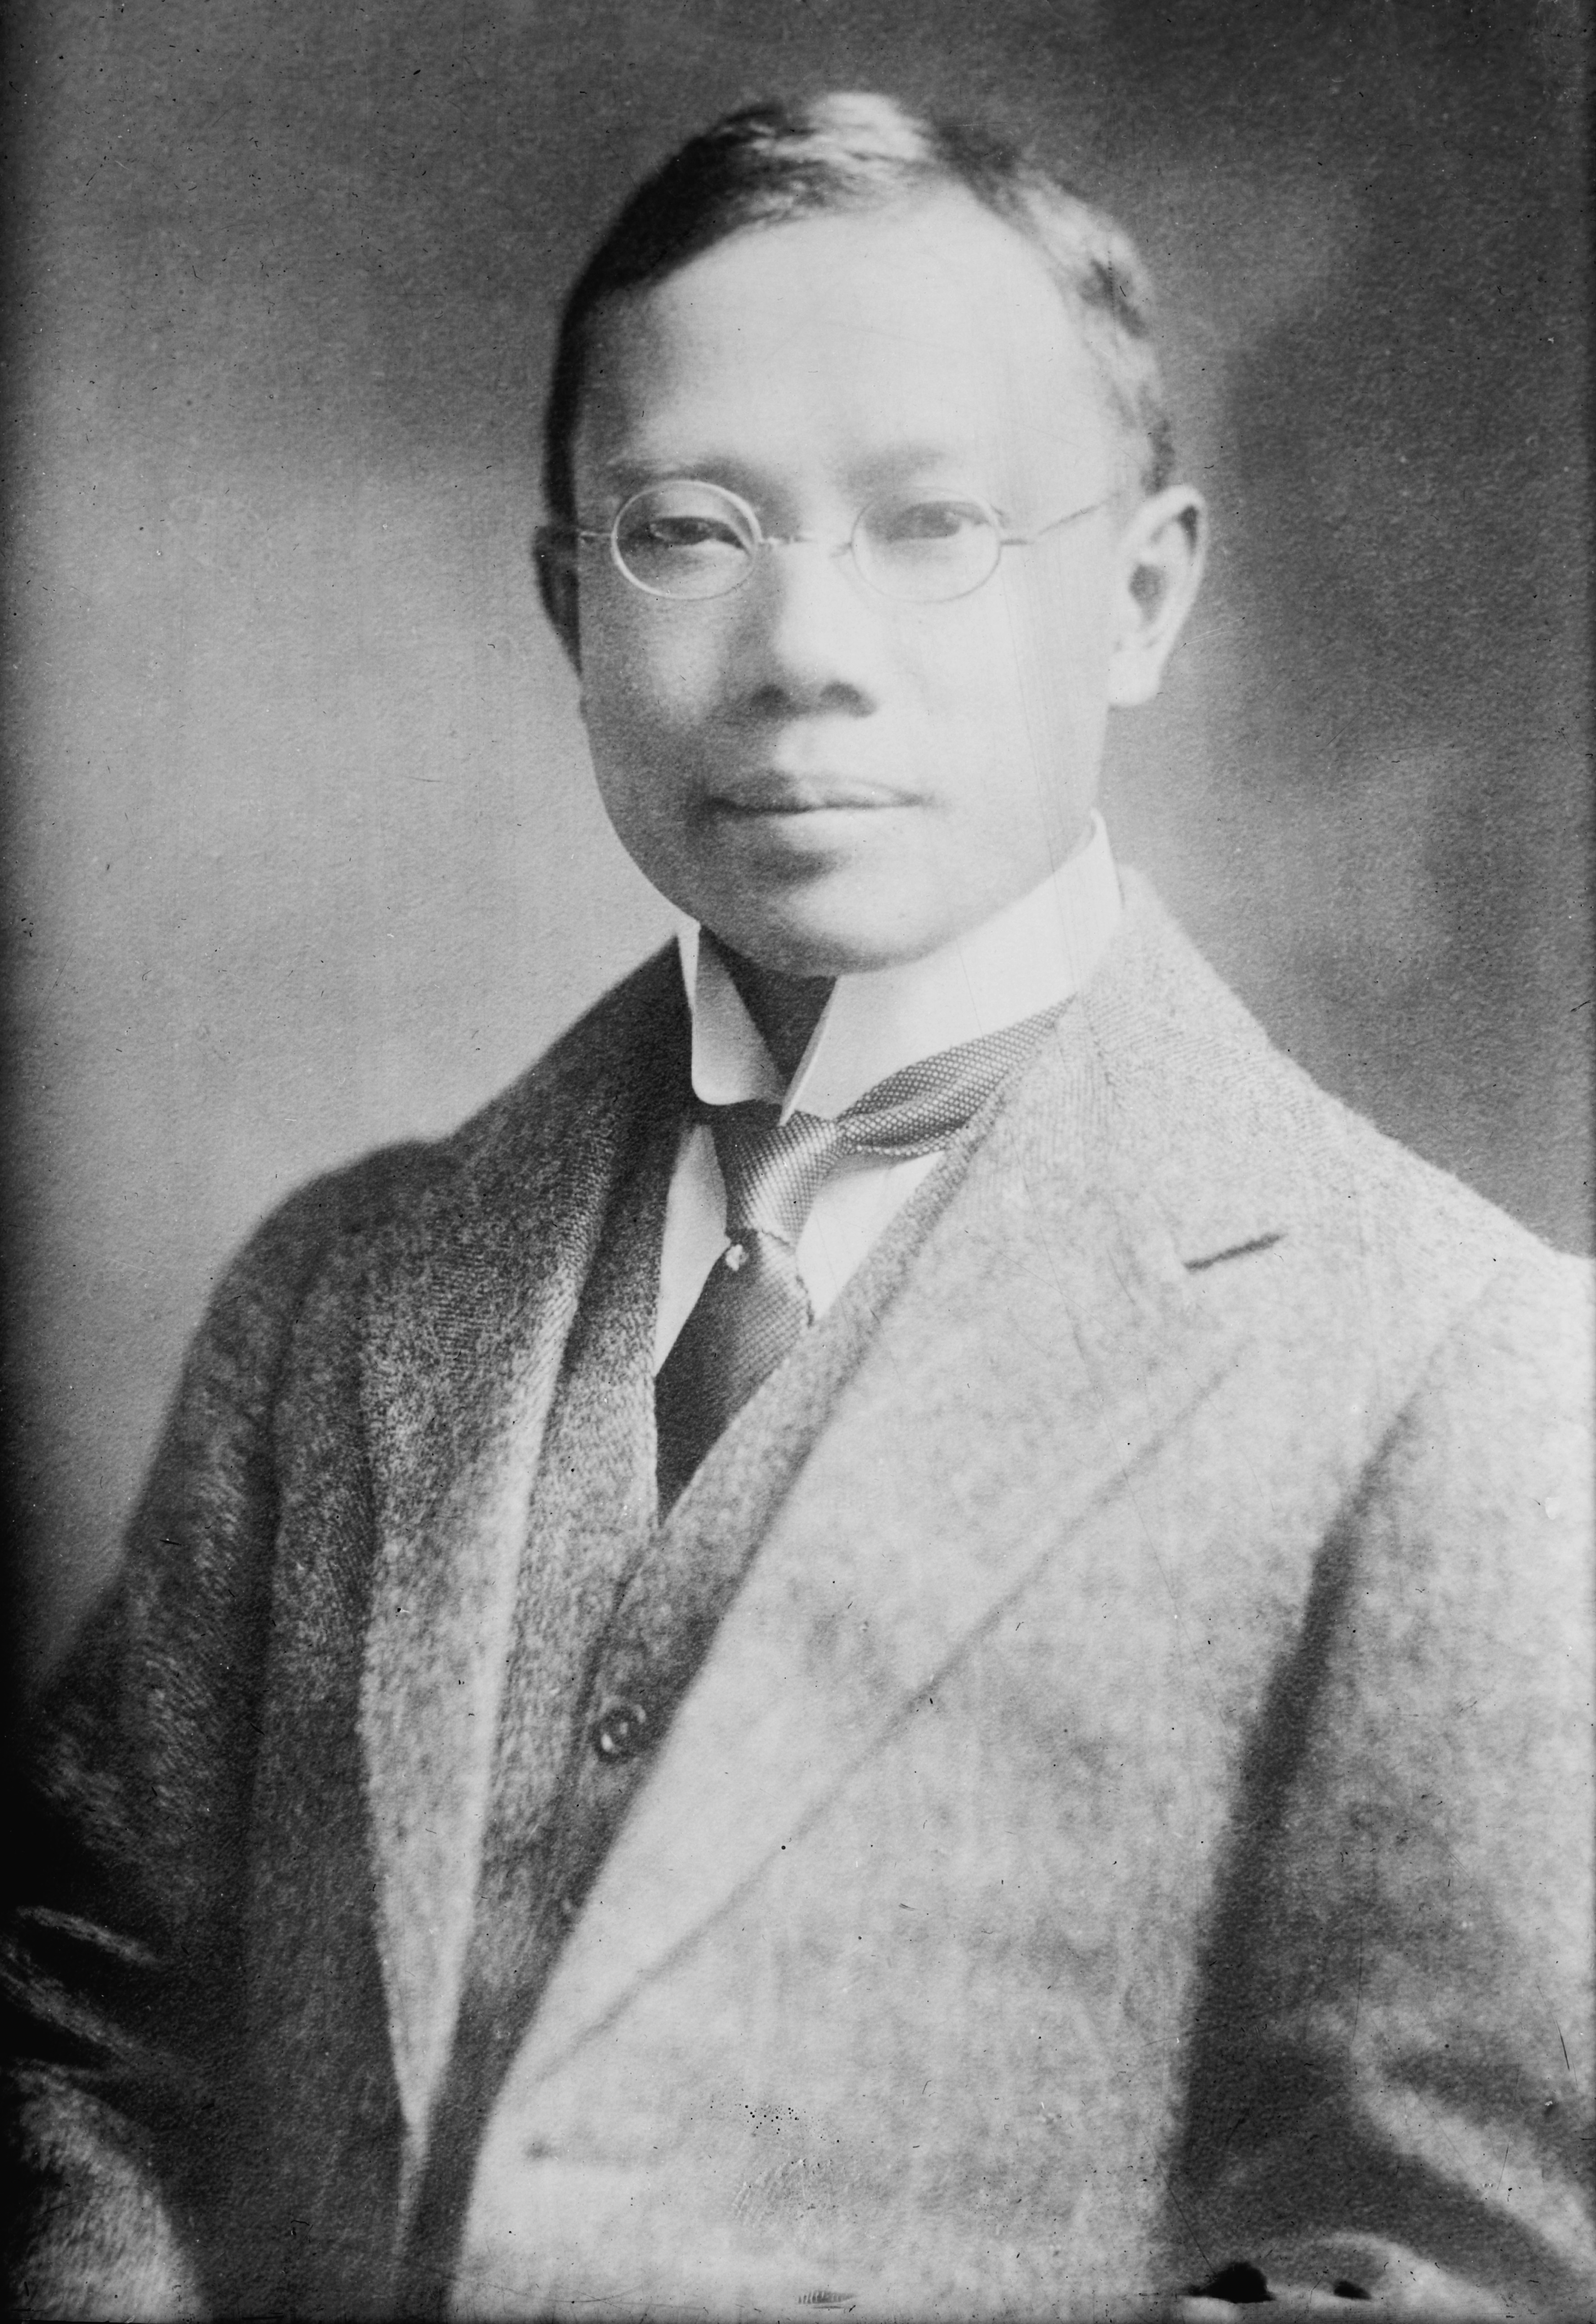 Black and white photograph of Dr. Wu Lien teh